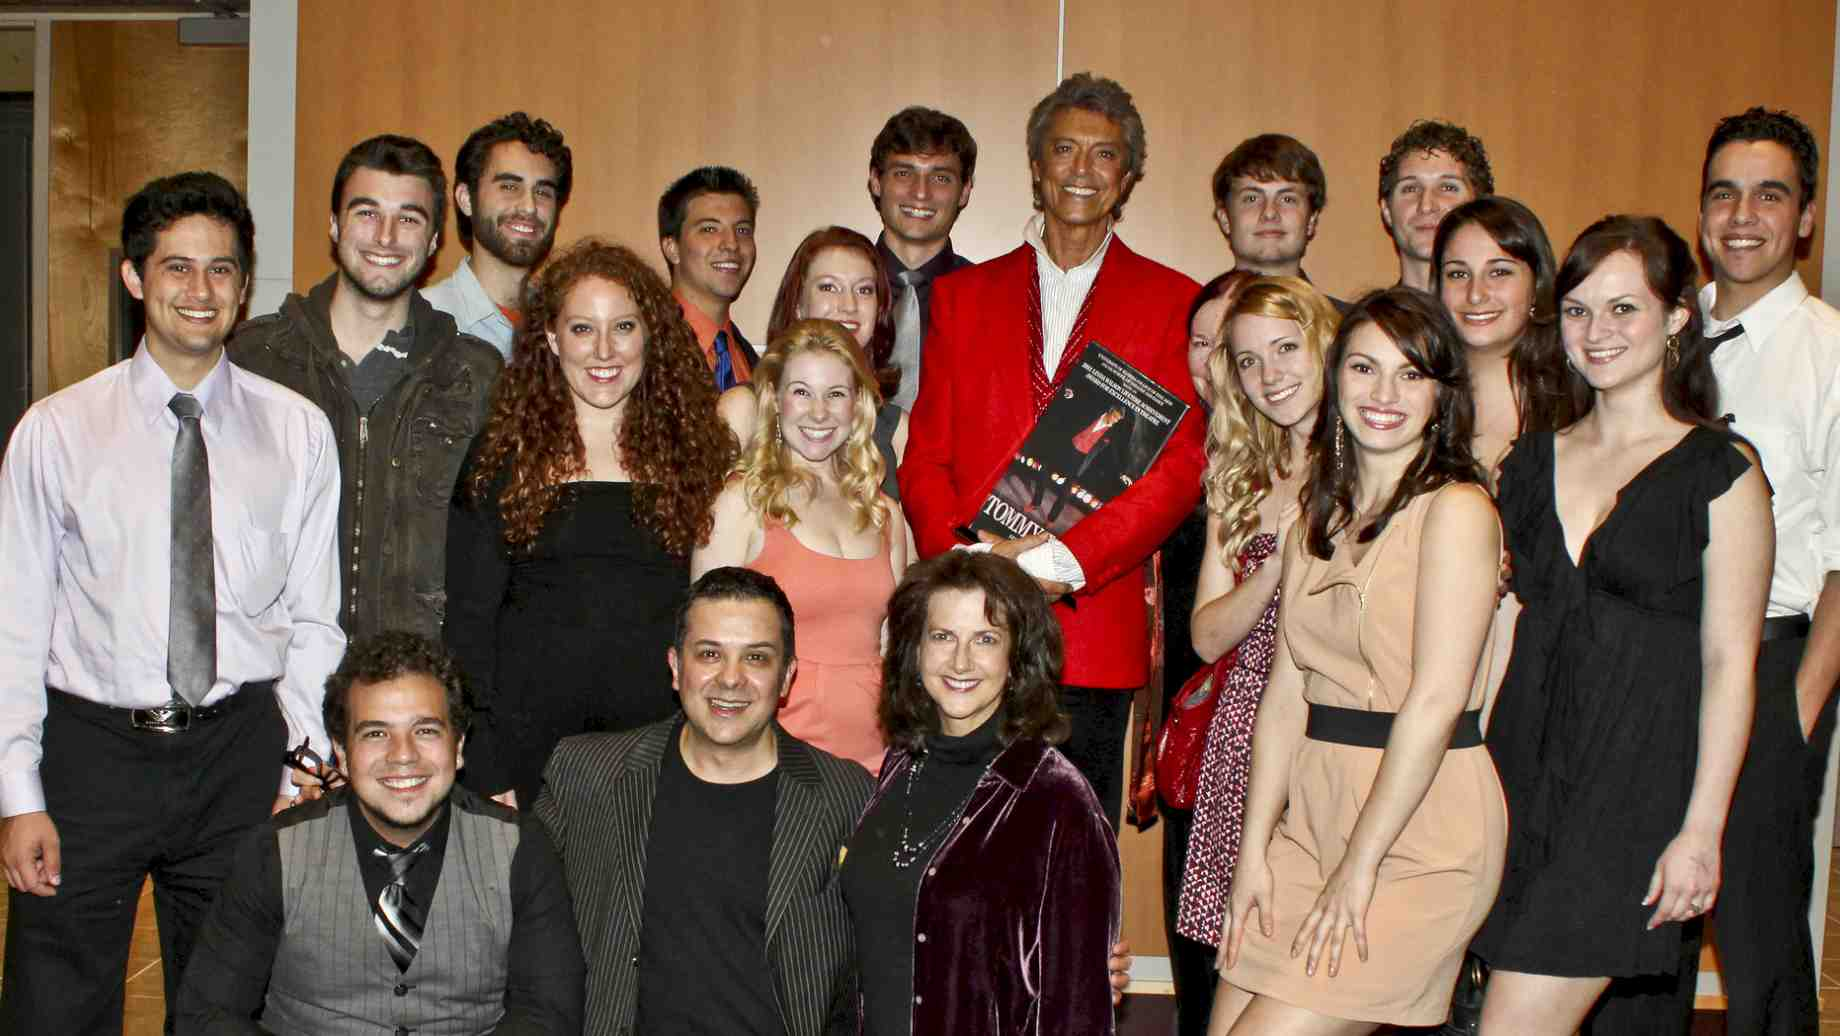 Tommy Tune with Musical Theatre students at the award ceremony.